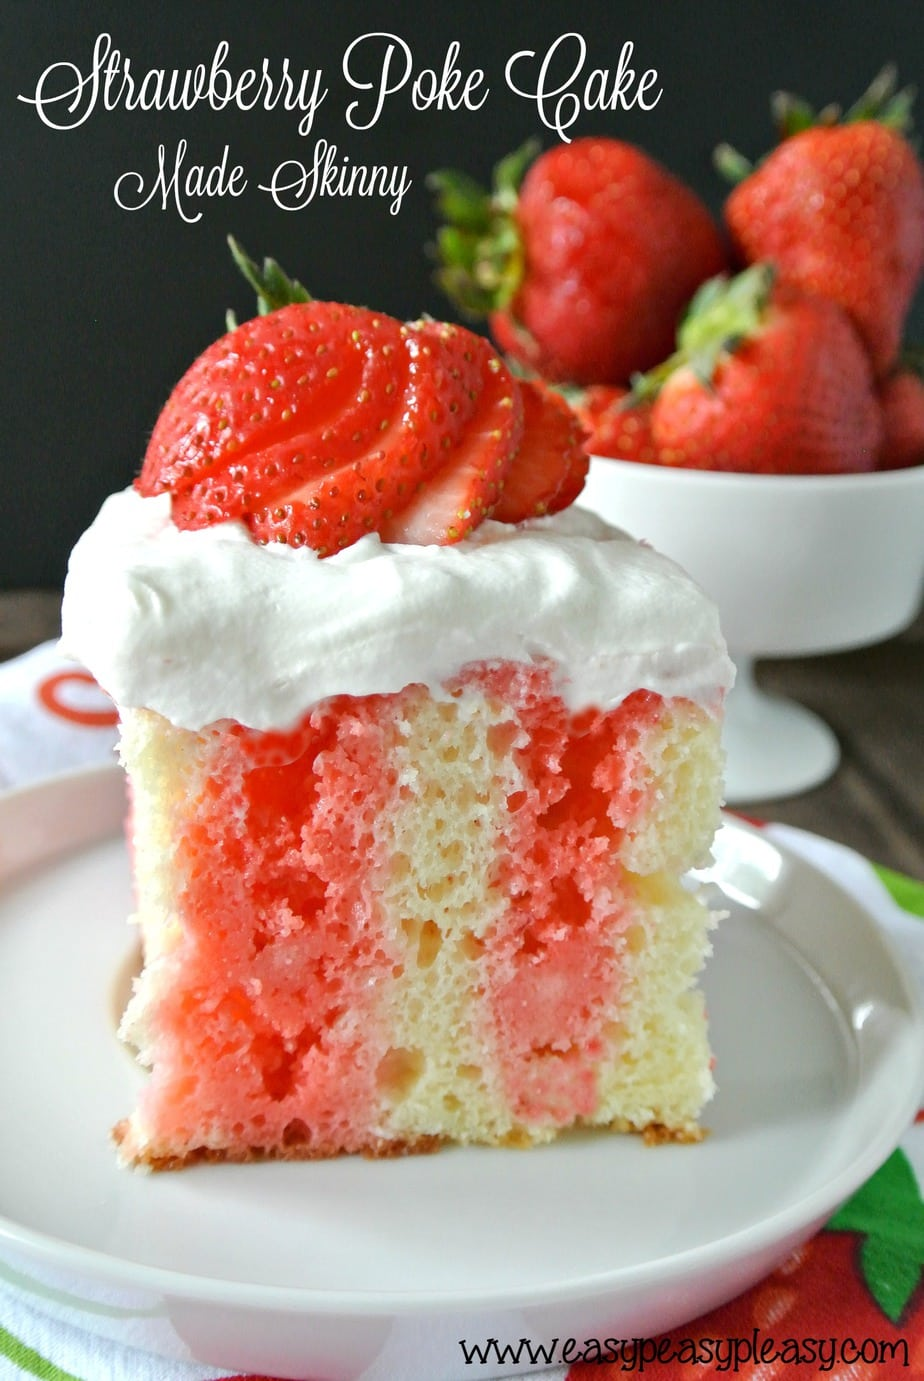 Strawberry Poke Cake Made Skinny is my lightened up version to this decadent dessert!